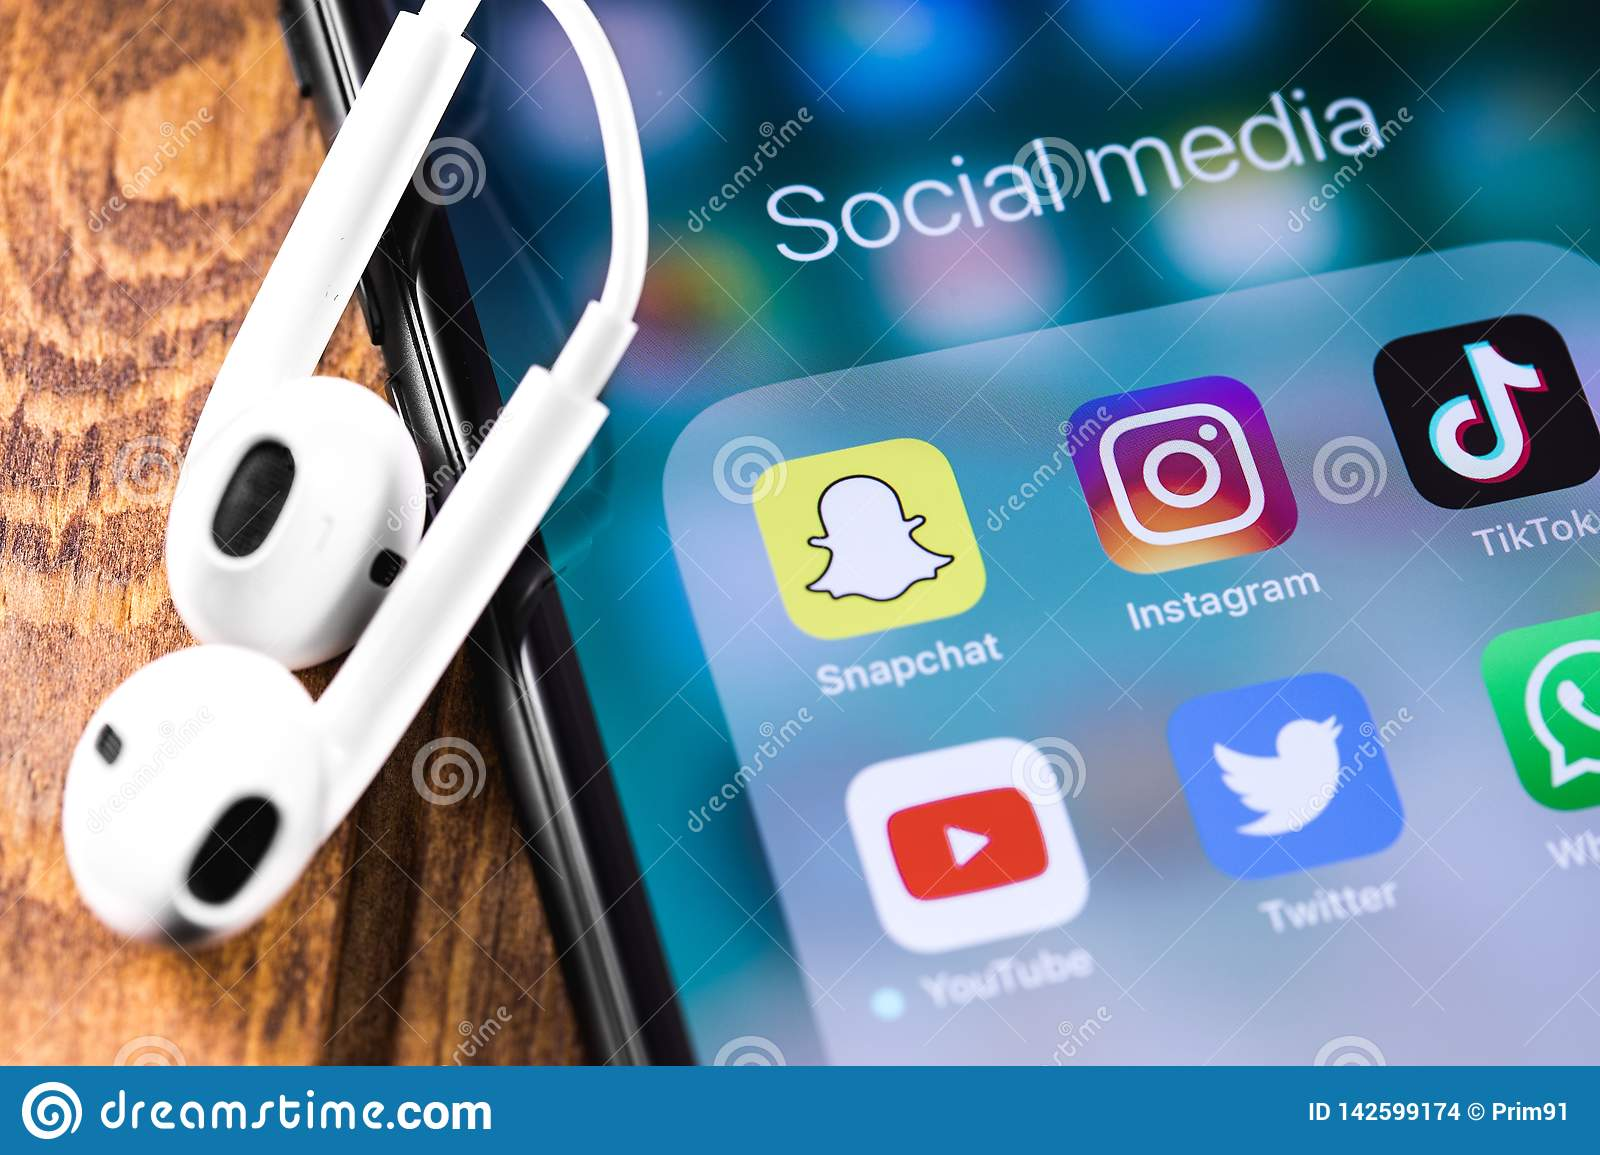 Instagram, Snapchat, Twitter, Youtube Icons Mobile Apps On